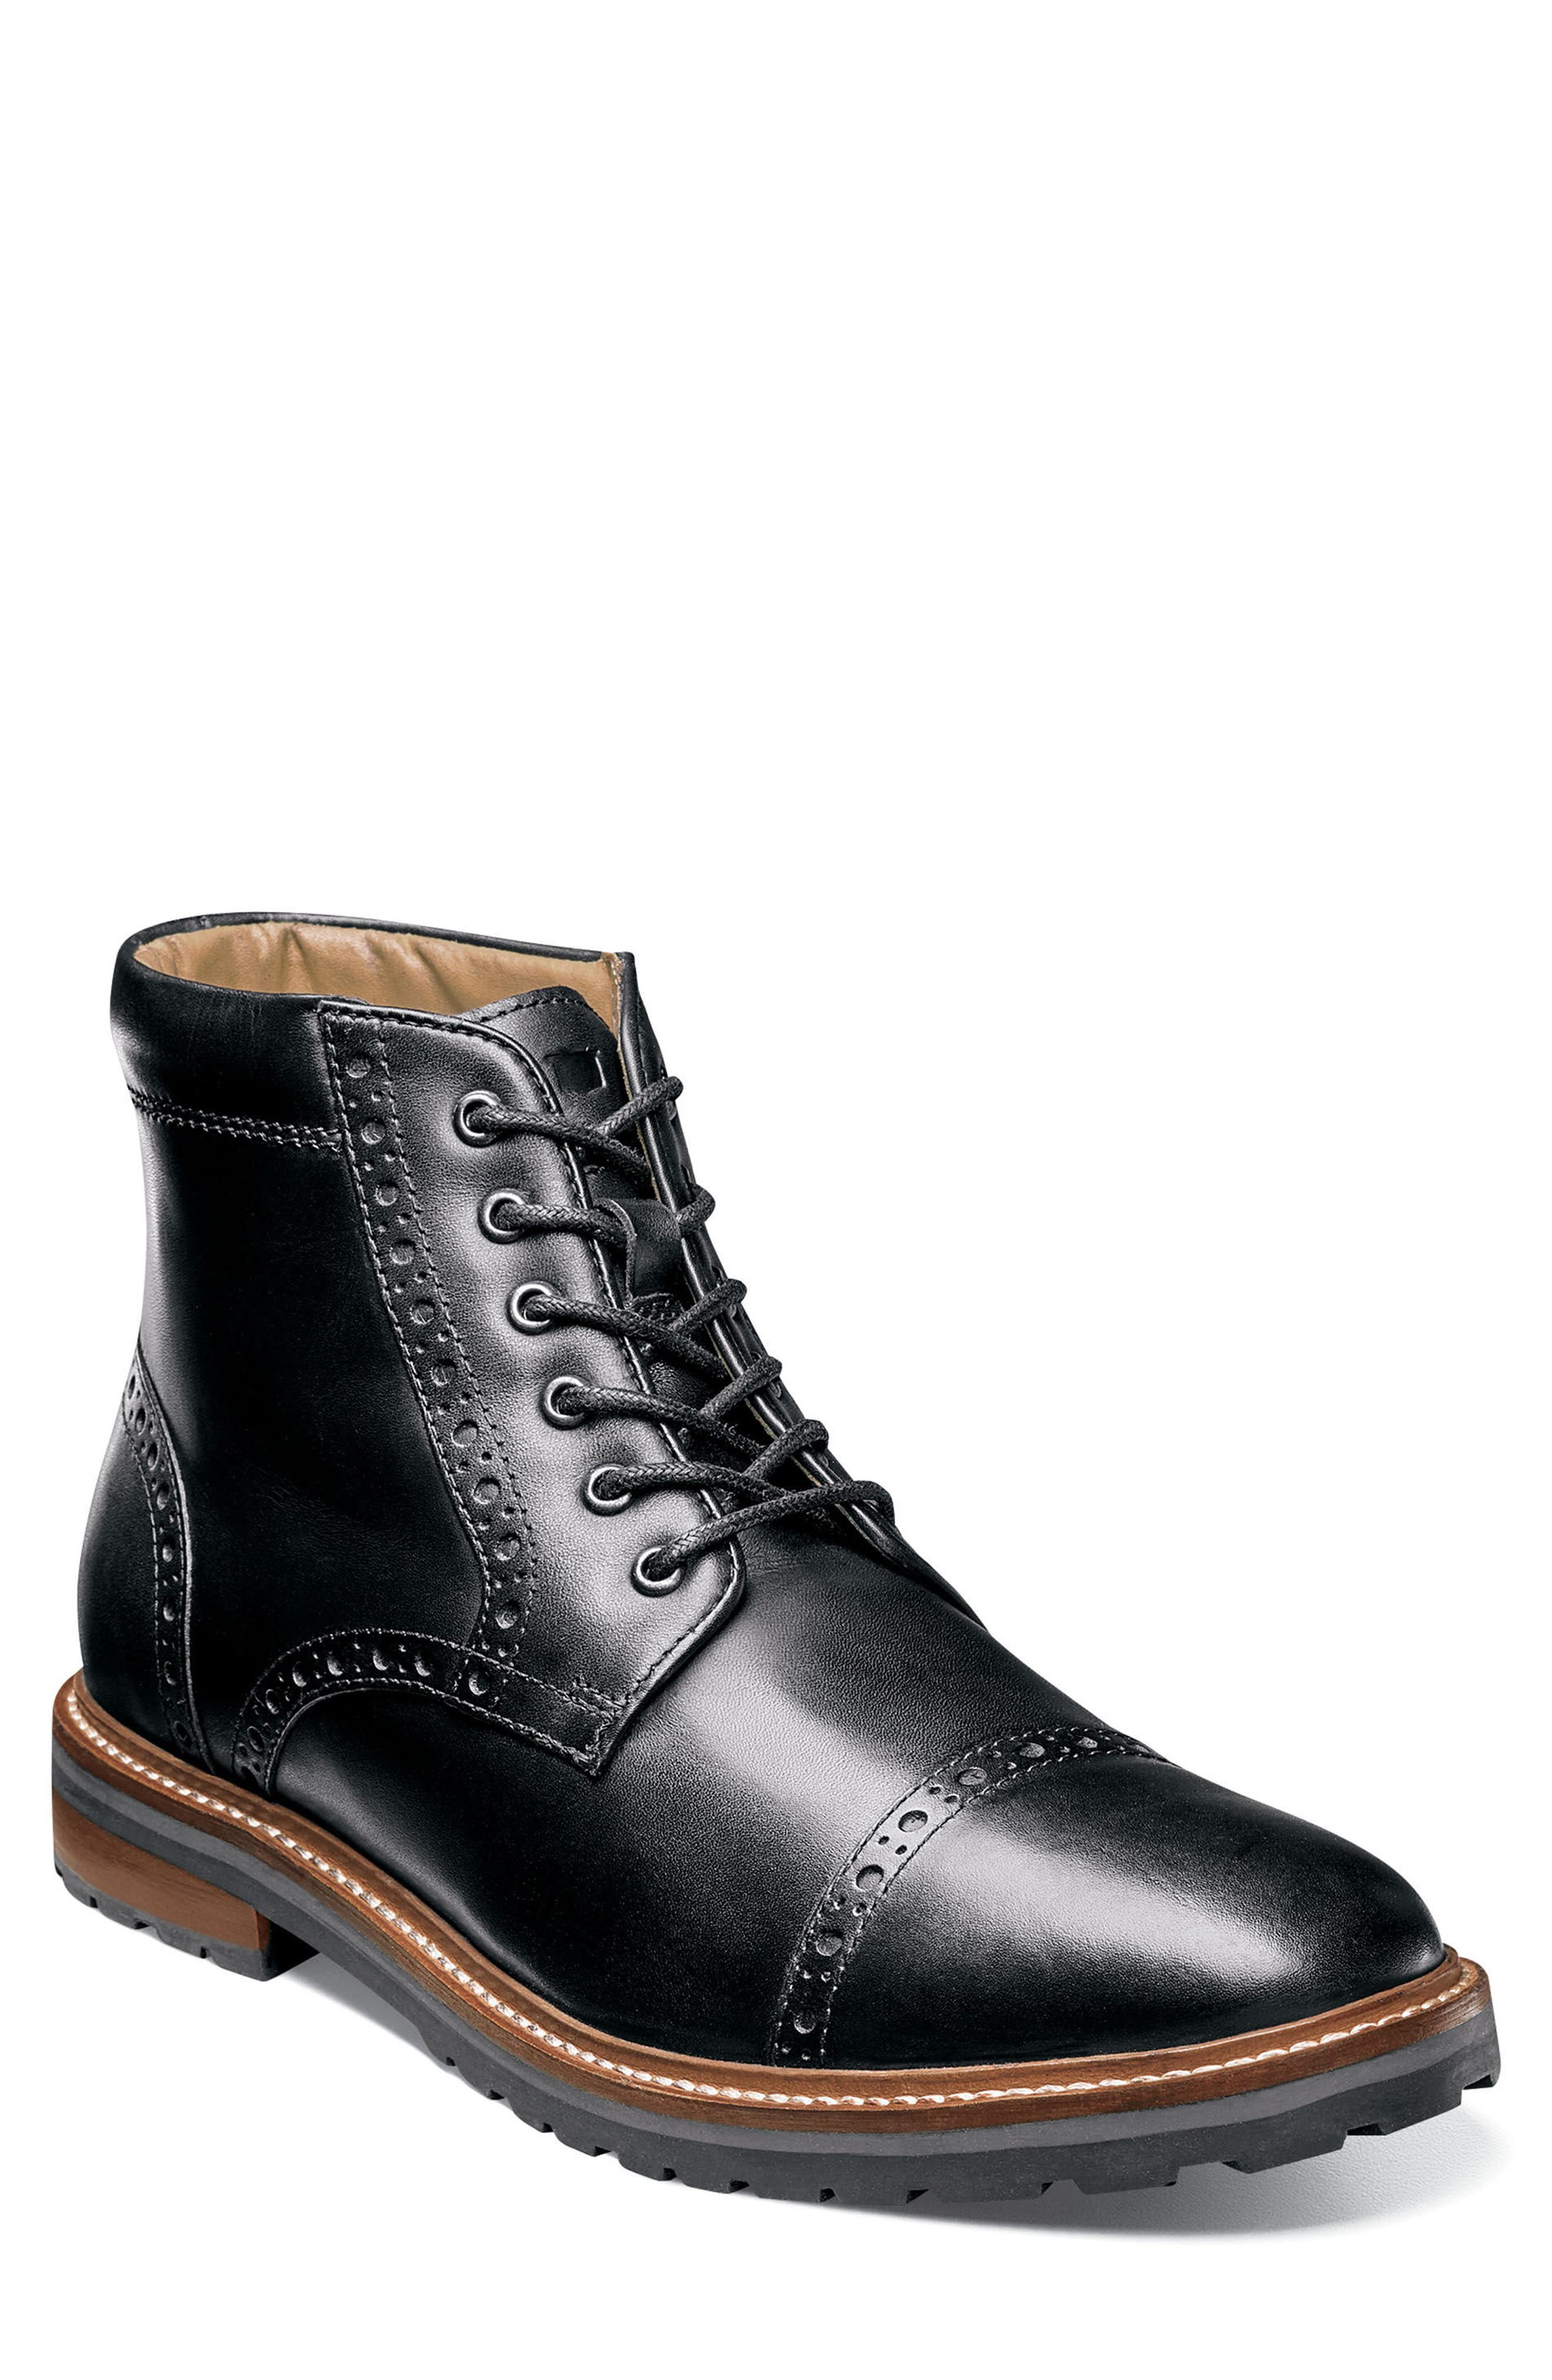 Alternate Image 1 Selected - Florsheim Estabrook Cap Toe Boot (Men)